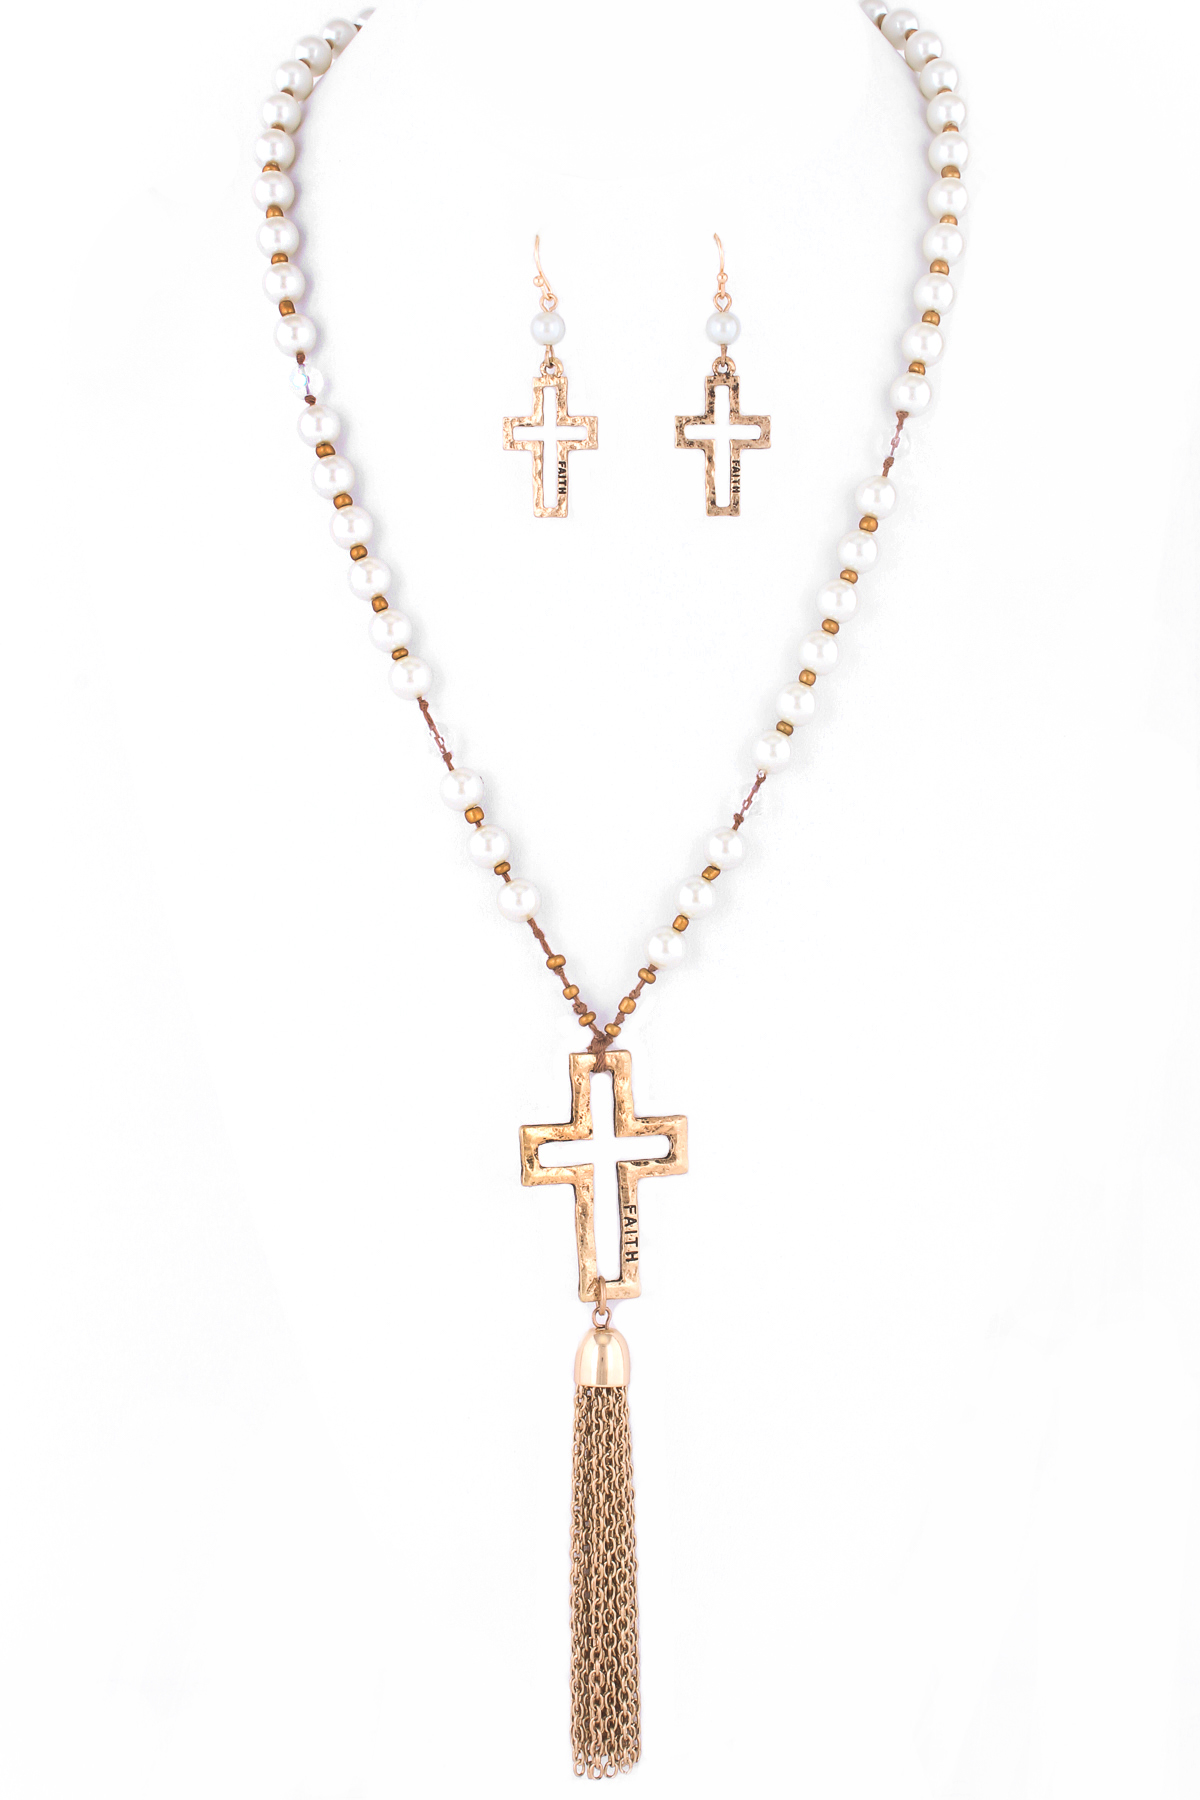 how to make beaded crosses with tassle